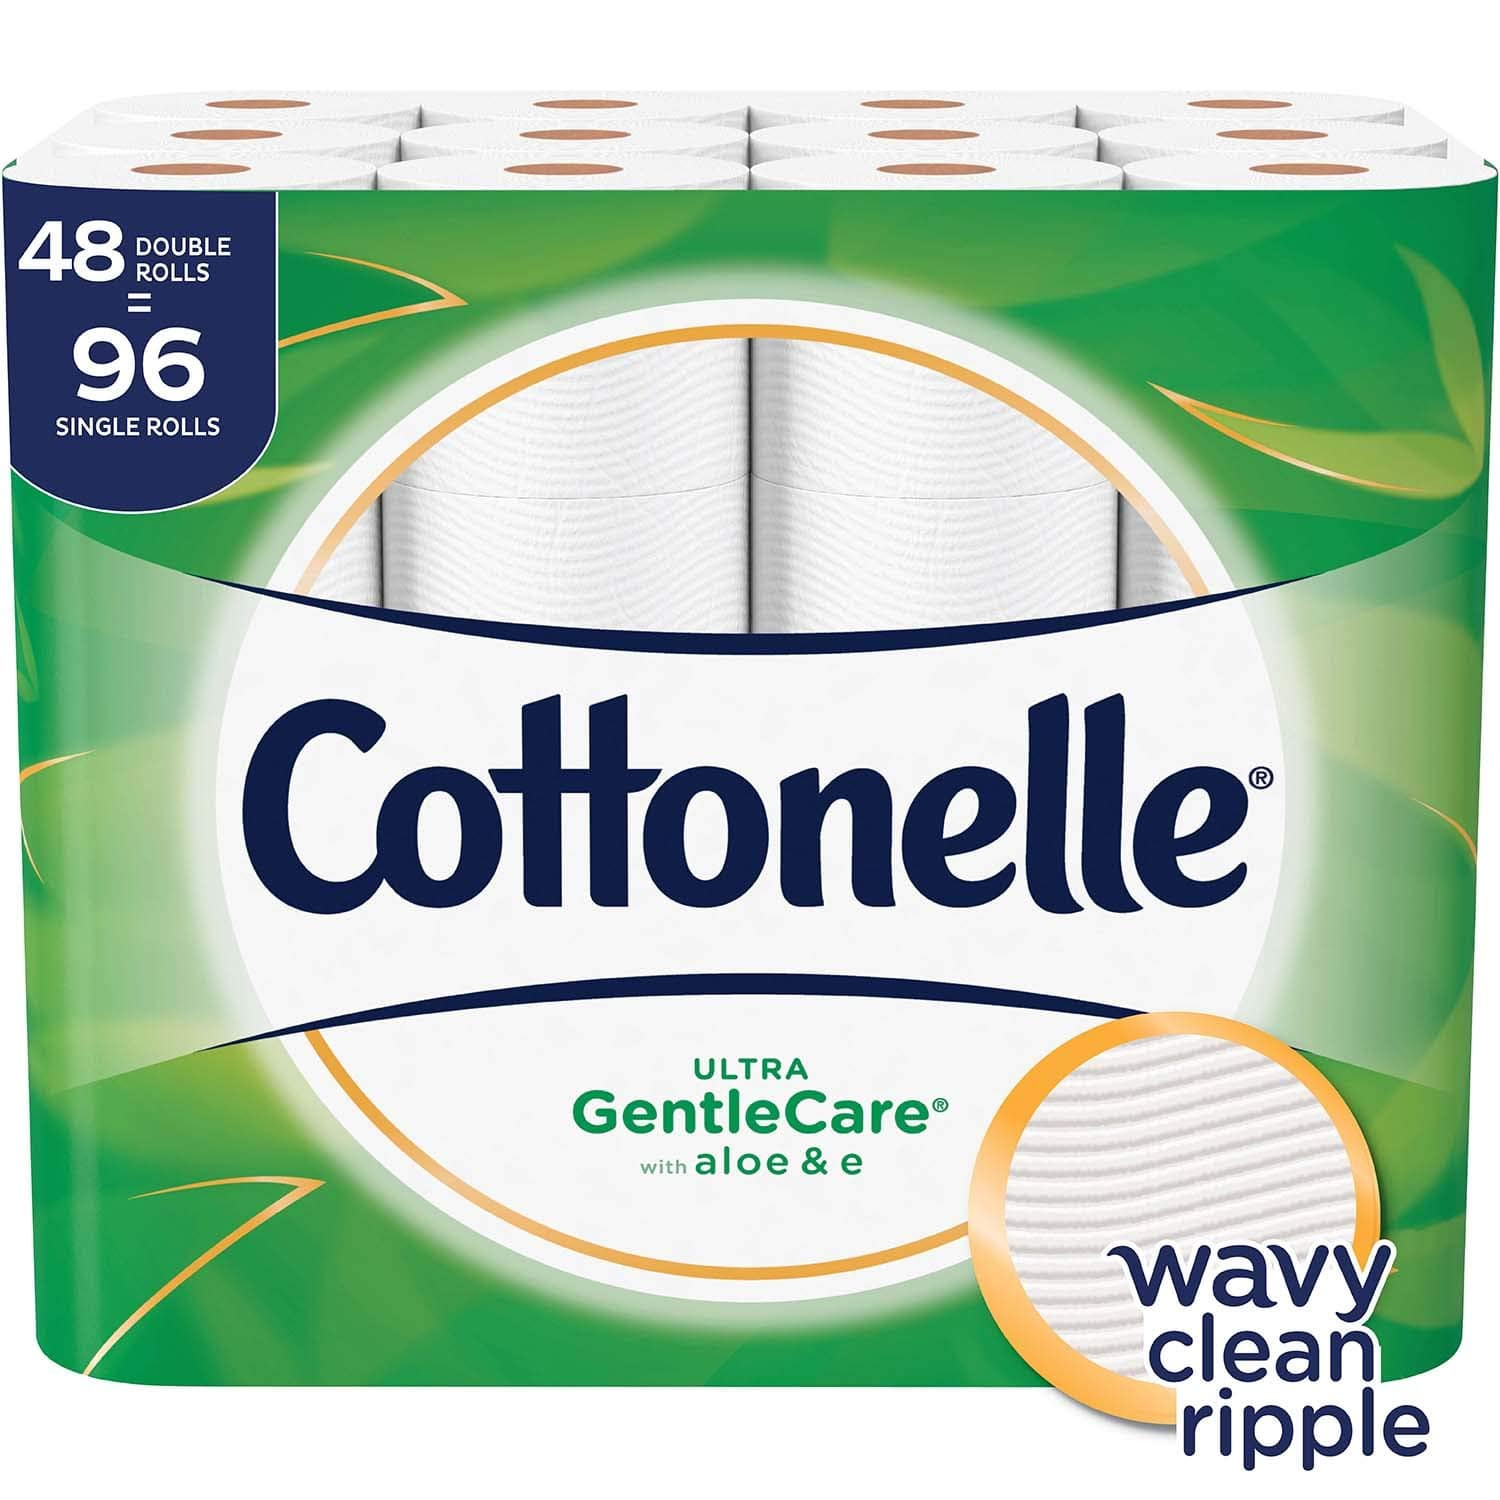 $16 for Cottonelle Ultra GentleCare Toilet Paper, 48 Double Rolls